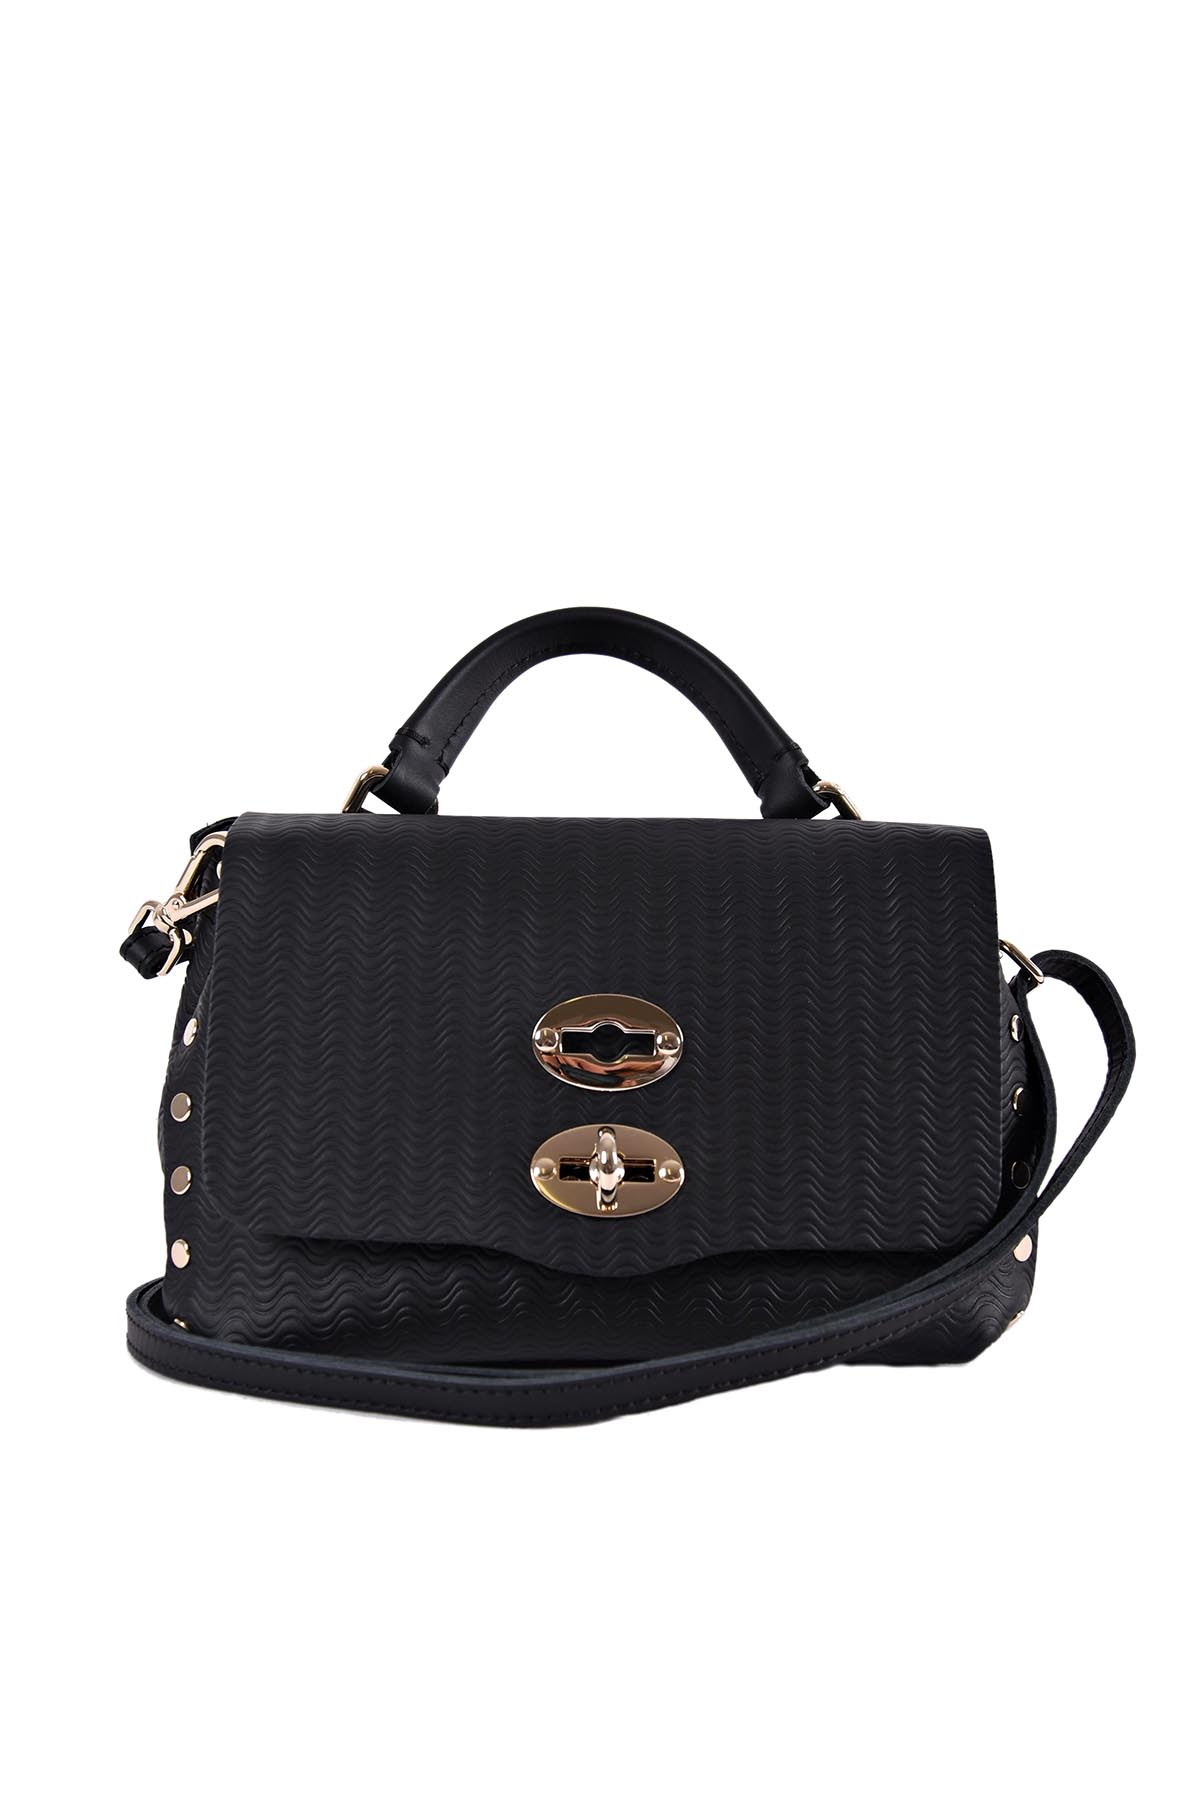 Browse Cheap Price Zanellato baby Cachemire Blandine tote Free Shipping  Supply Low Price Fee Shipping Cheap b9254c6b55